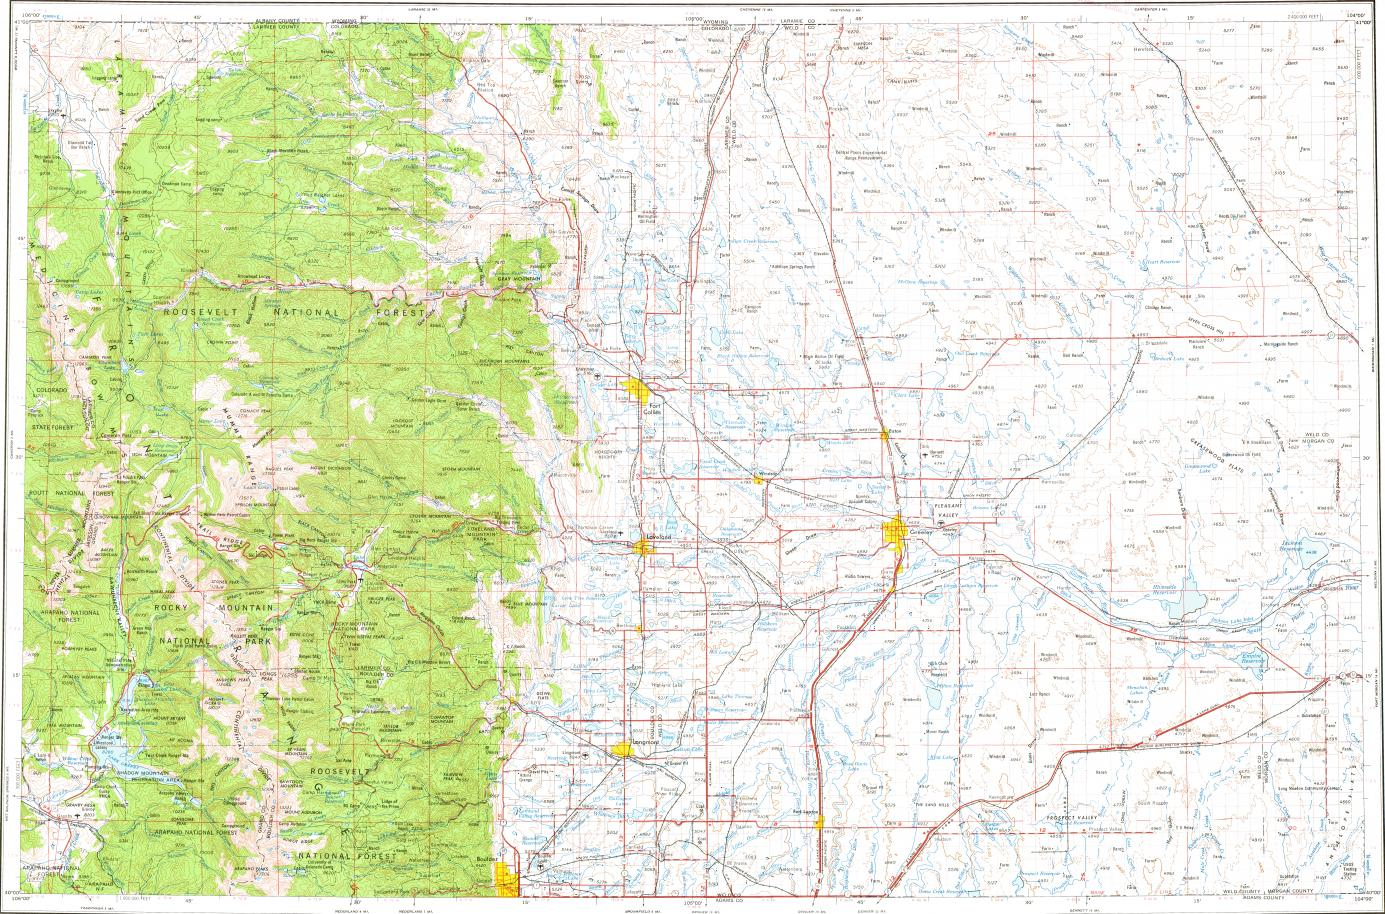 Download topographic map in area of Boulder Fort Collins Greeley